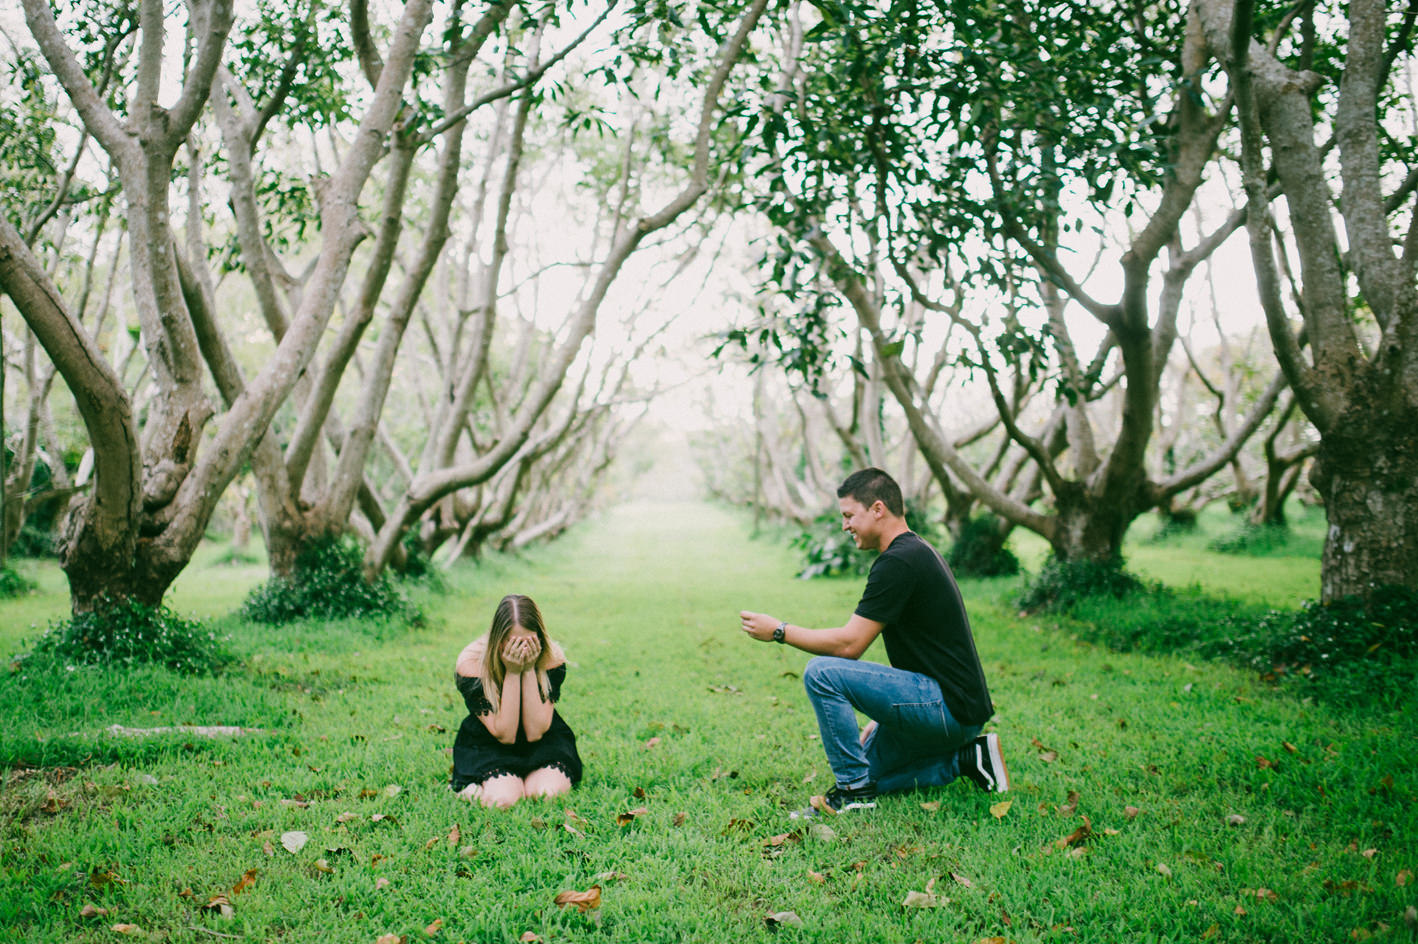 018-proposal-dan-ash_sophie-baker-photography